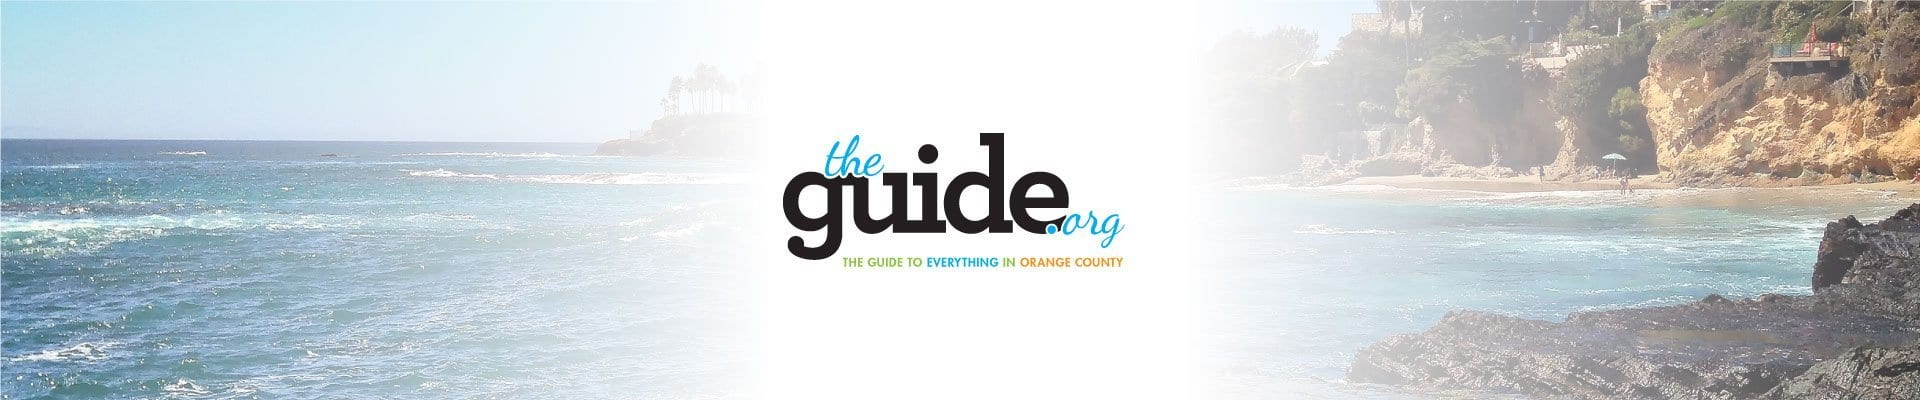 Orange County City guide logo design